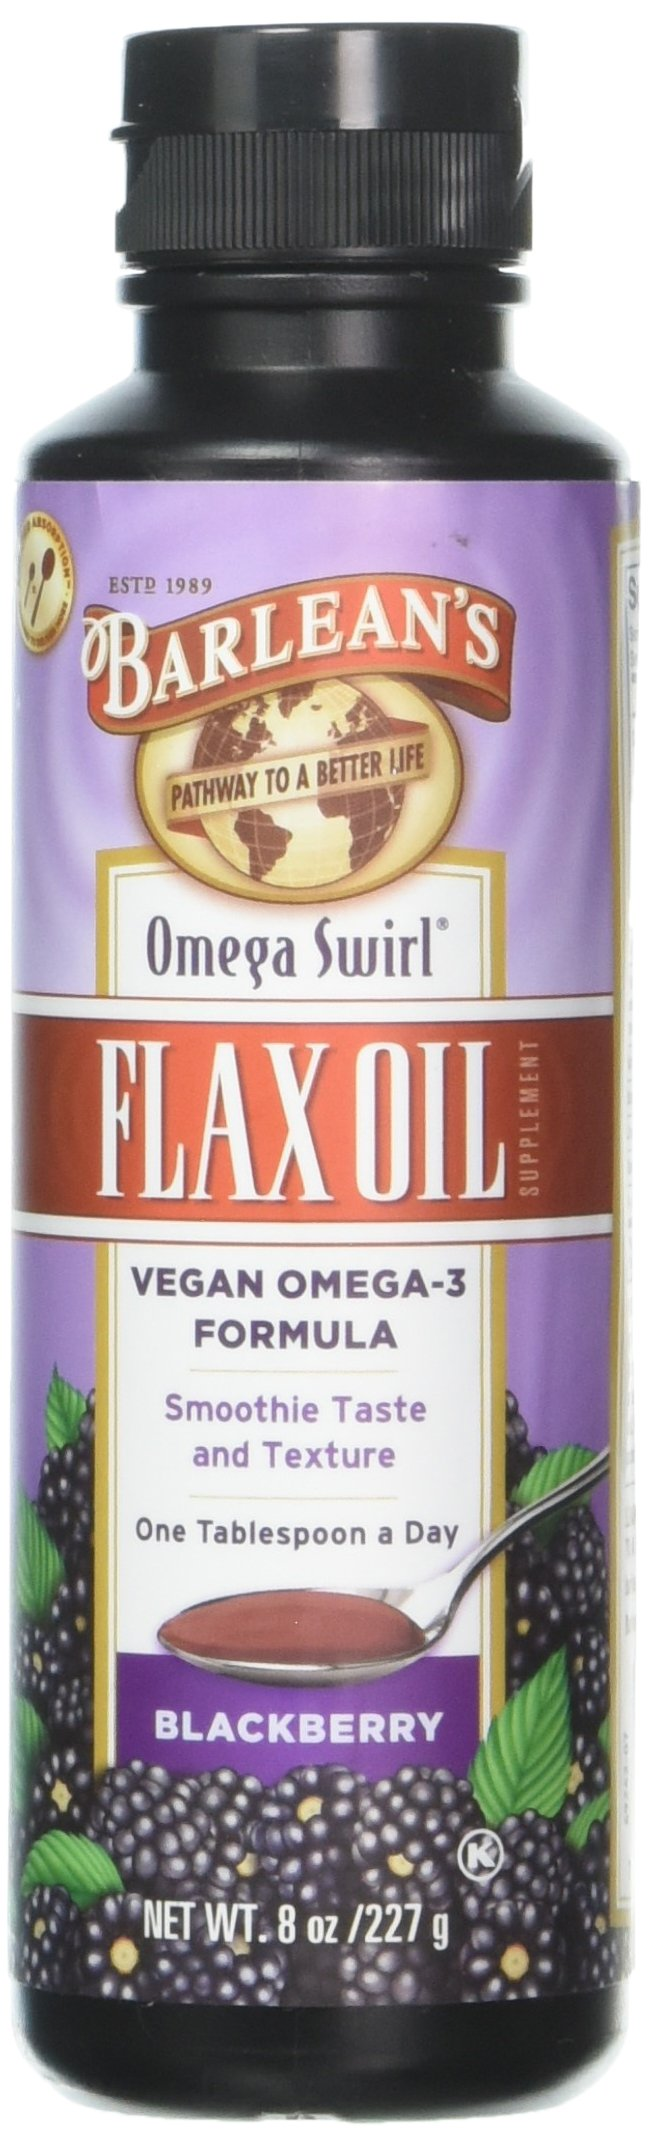 Barlean's Omega Swirl Flax Oil, Blackberry, 8-oz